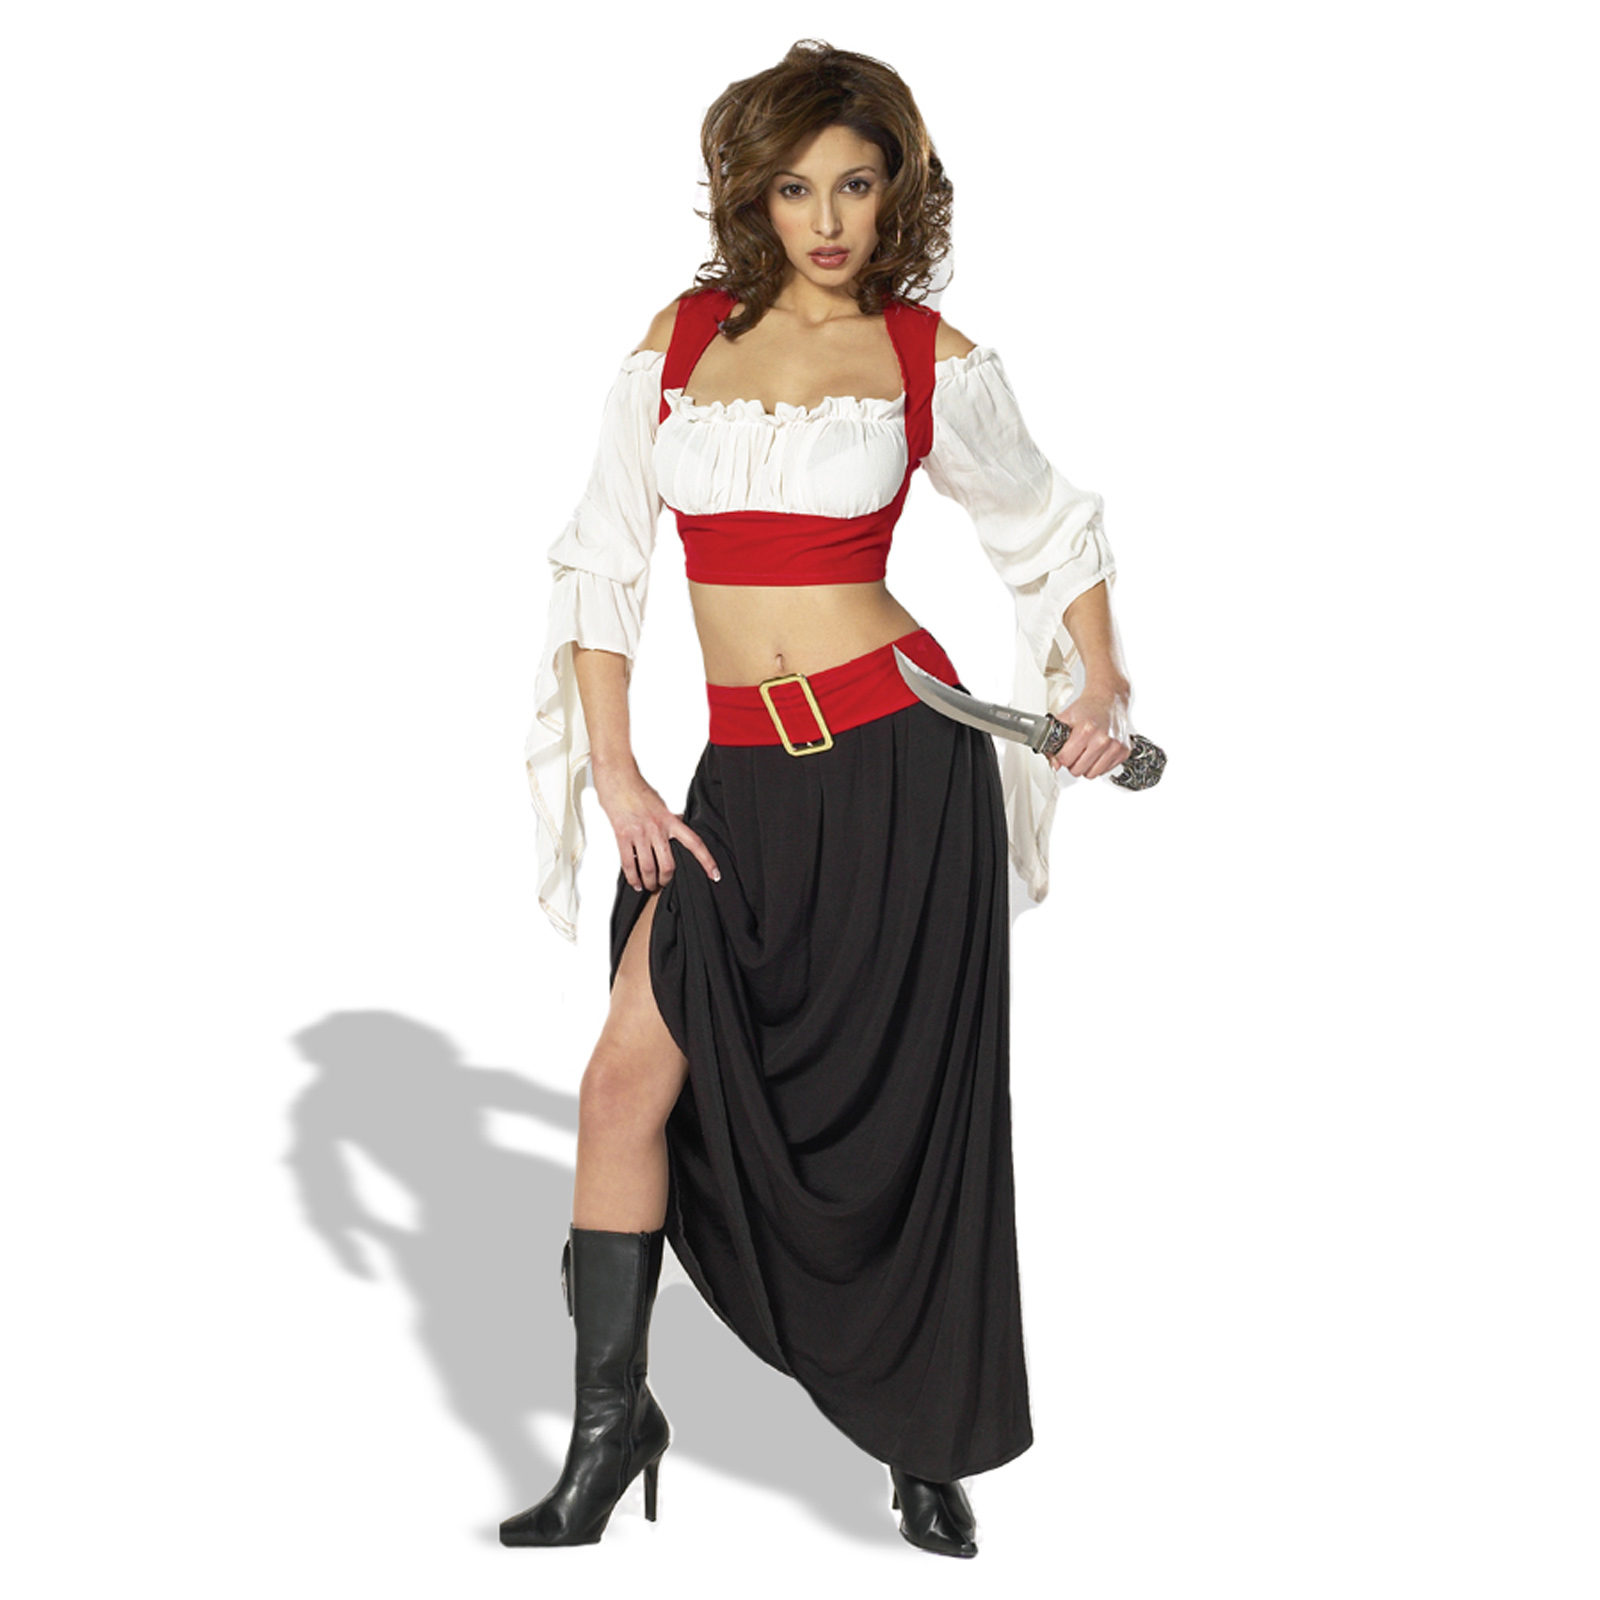 sc 1 th 225 & Female pirate costume [Archive] - The Wench.Org Forums